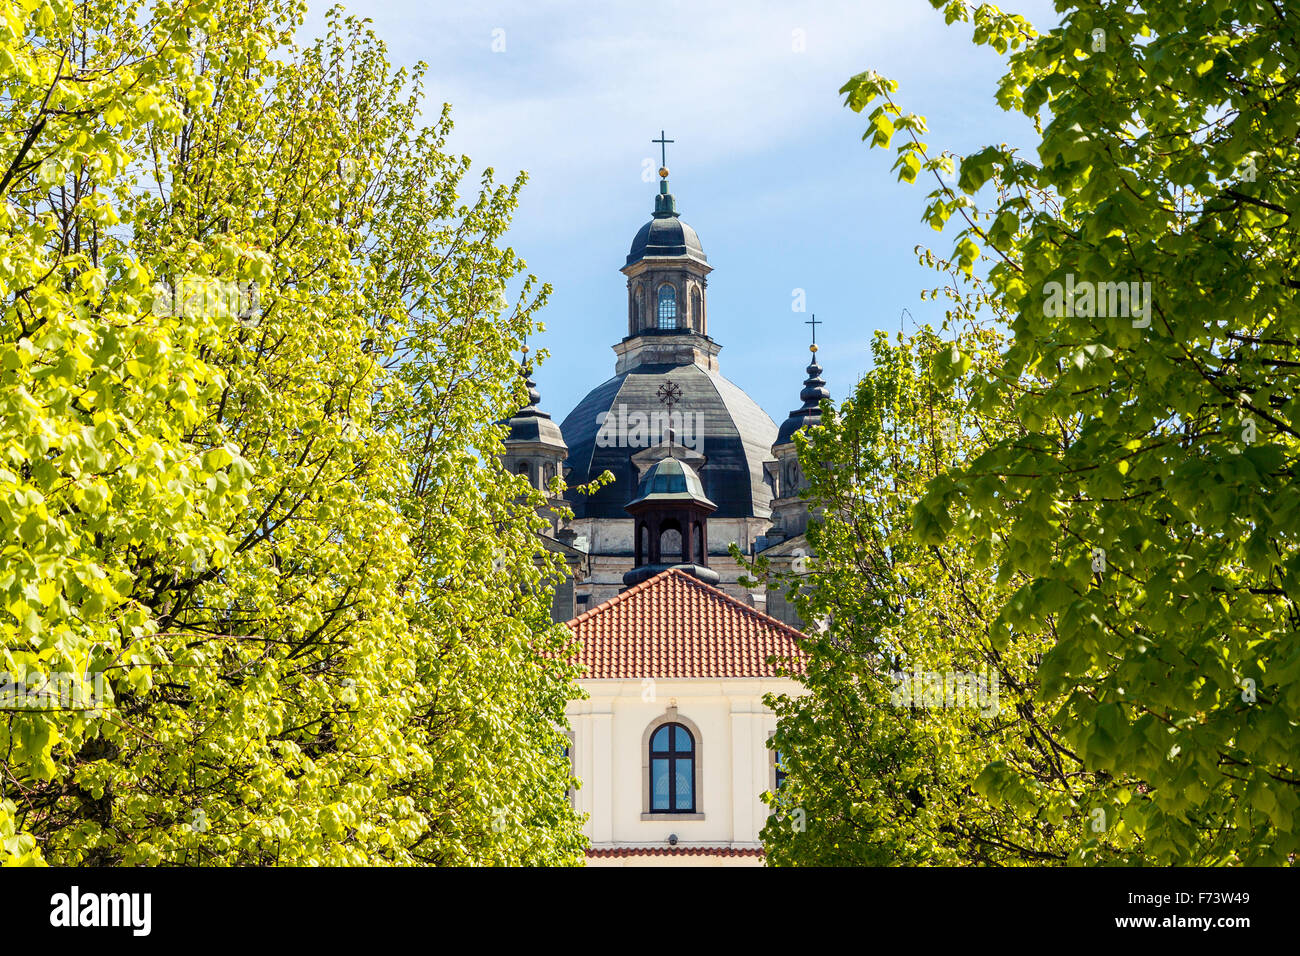 Baroque monastery of Pazaislis in Kaunas, Lithuania seen through green trees - Stock Image